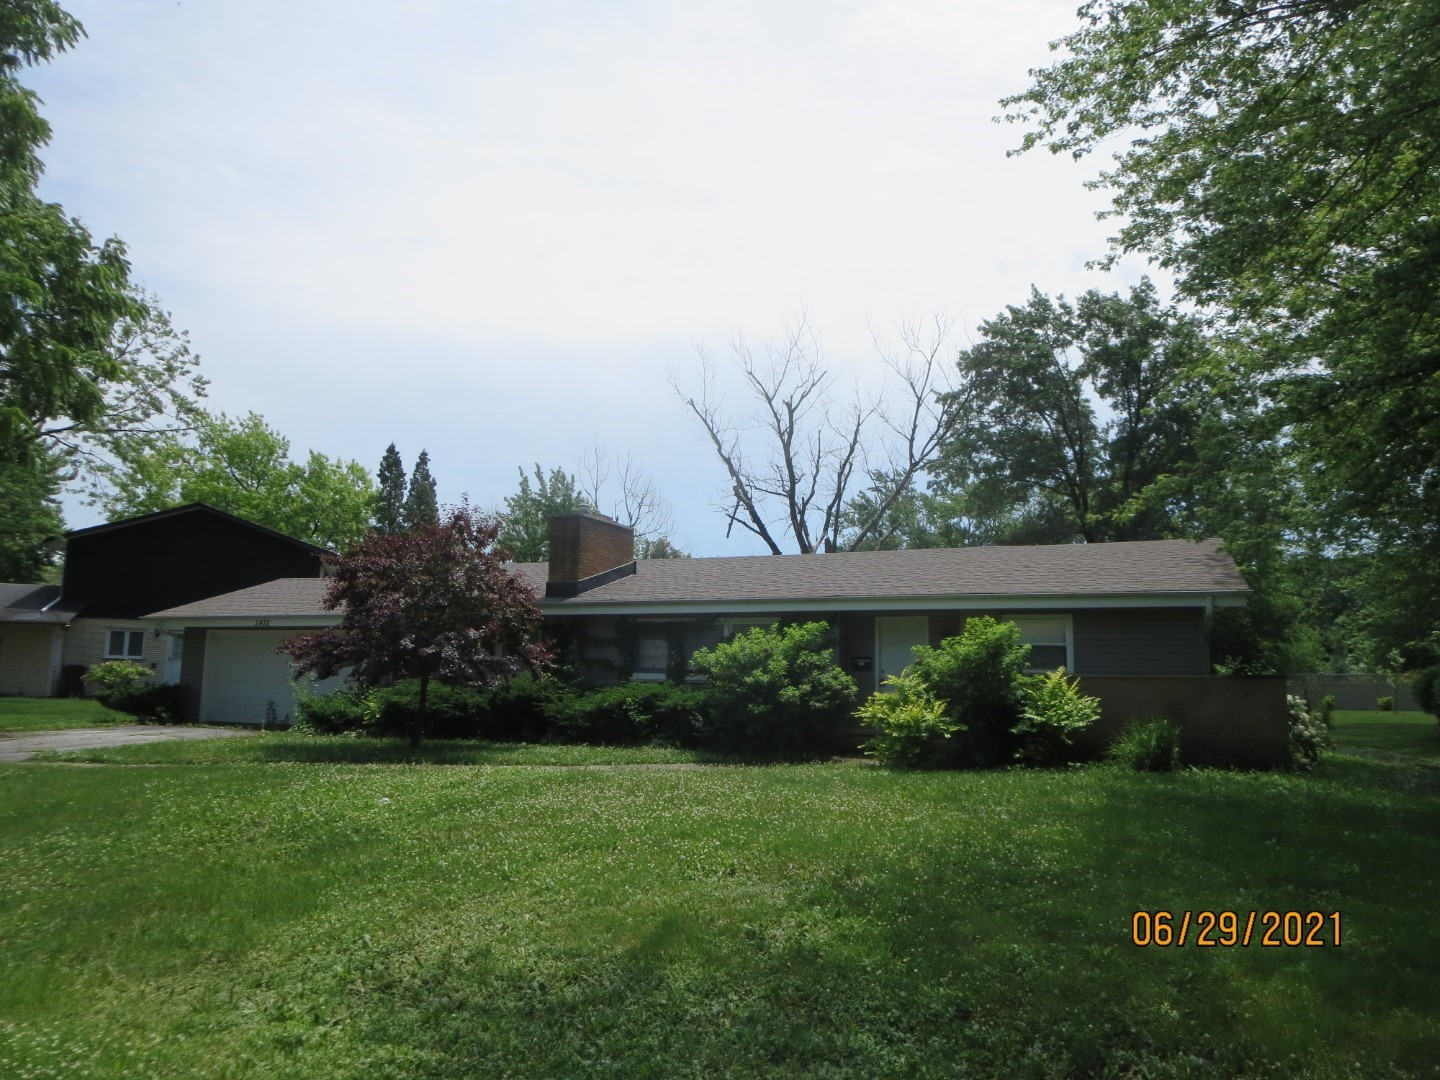 SINGLE FAMILY HOME SOLD AS-IS AND READY FOR A NEW FAMILY.   NOT BANK OWNED AND NOT A SHORT SALE, OWNERS ARE LOCAL AND MOTIVATED. GREAT POTENTIAL. VACANT AND EASY TO INSPECT. PLEASE NOTE: 0% TAX PRORATIONS ARE OFFERED, THE SELLER WILL PAY CURRENT AND ALL PRIOR TAX BUT 0% CREDIT FOR FUTURE BILLS.  SPECIAL WARRANTY DEED AT CLOSING. NO SURVEY.  FOR FASTER RESPONSE PLEASE USE SELLERS CONTRACT, ADDENDUM AND DISCLOSURES UNDER DOCUMENTS.